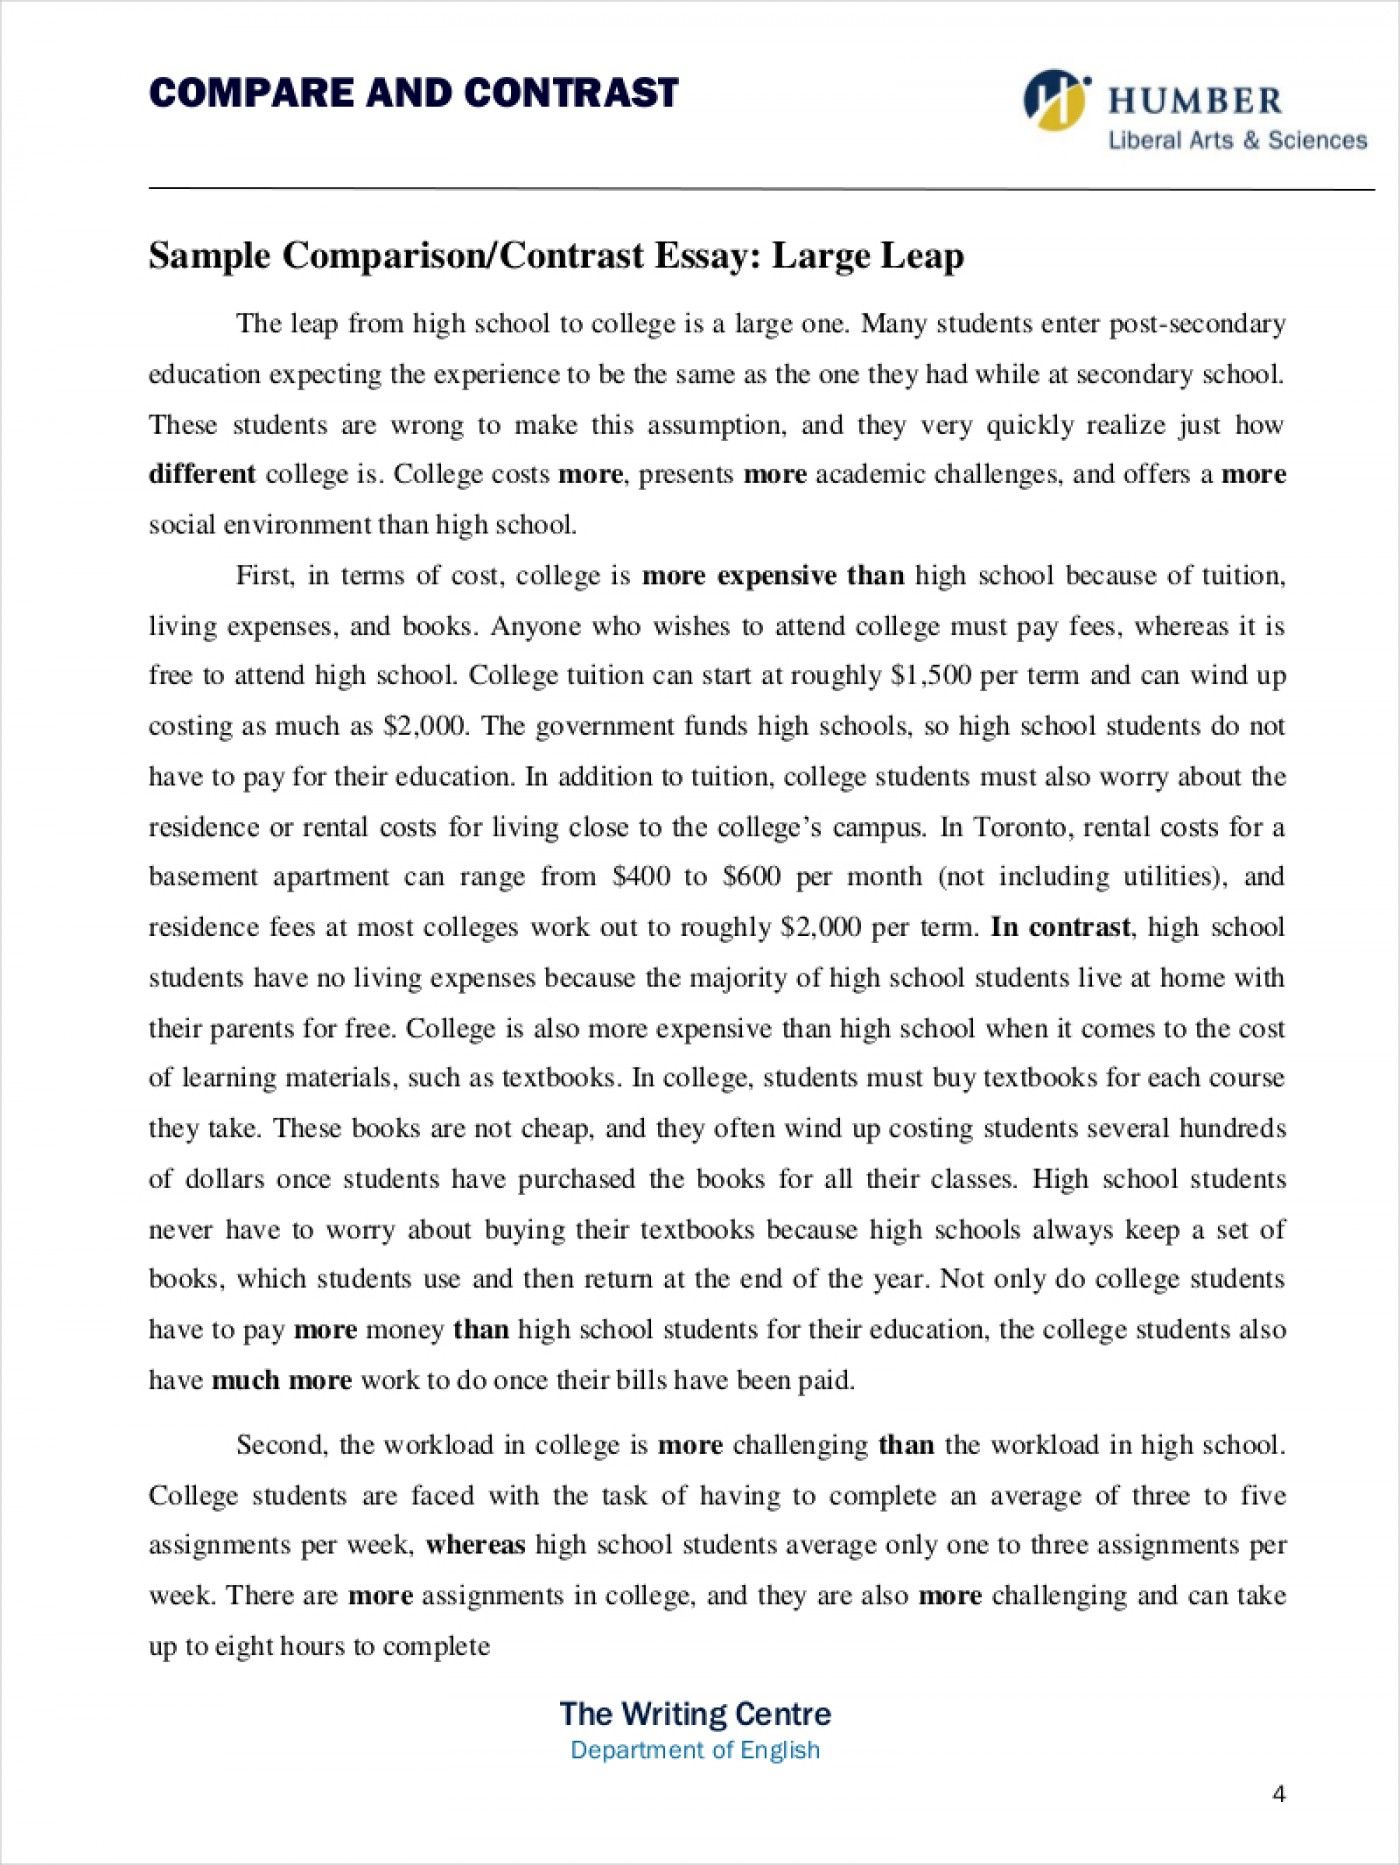 014 How To Write Compare And Contrast Essay Example Comparative Samples Free Pdf Format Download Throughout Examples Comparison Thesis Coles Thecolossus Co Within Ex Outstanding A Outline Ppt Middle School 1400